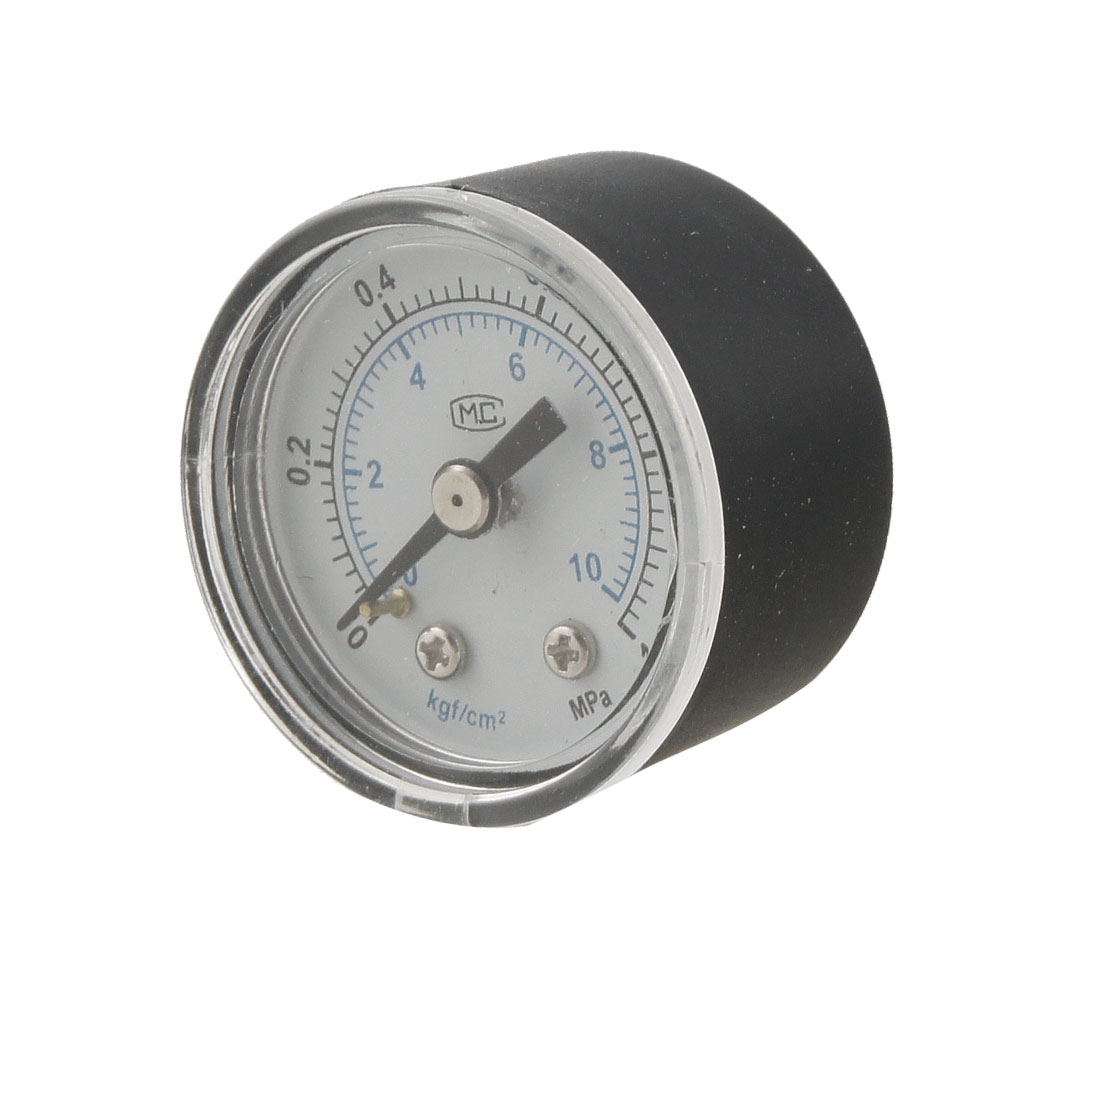 "0-1MPa 0.37"" Threaded Dial Air Compressor Pressure Gauge"